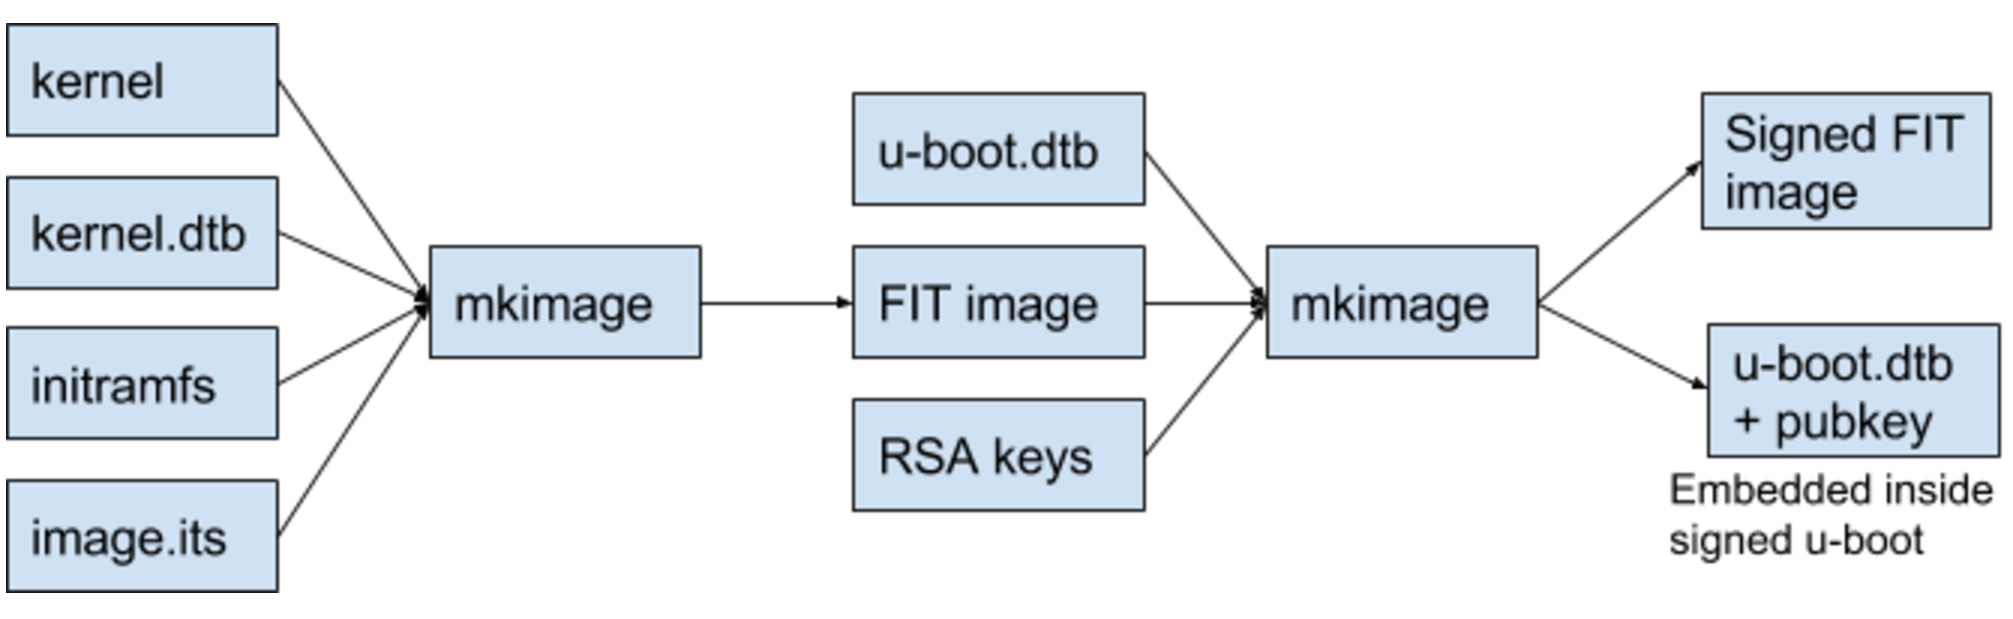 we can trust the public key inside of U-Boot to verify the FIT image